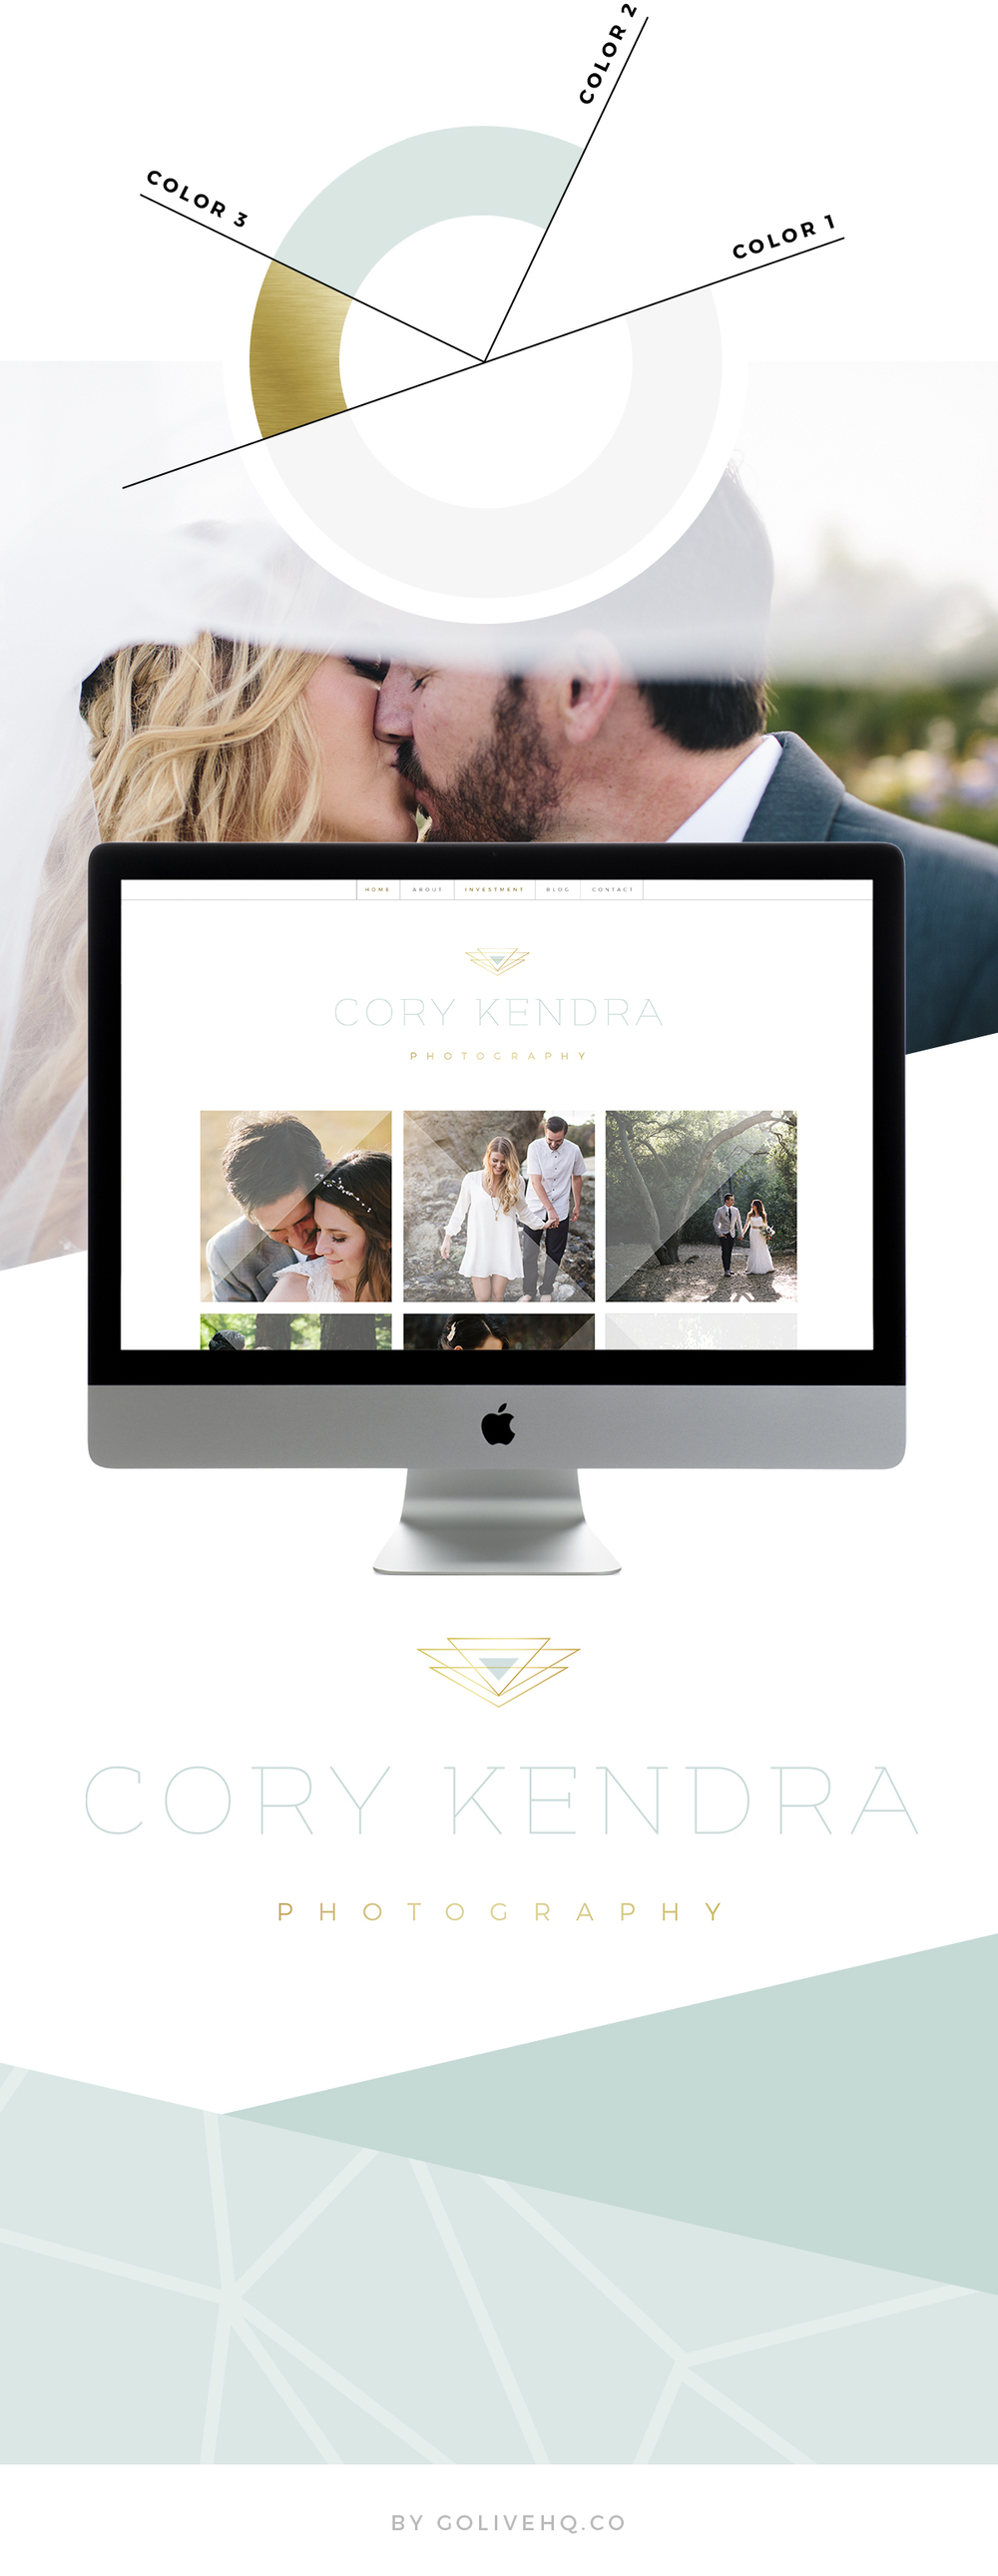 wedding photography website - by GOLIVEHQ.CO